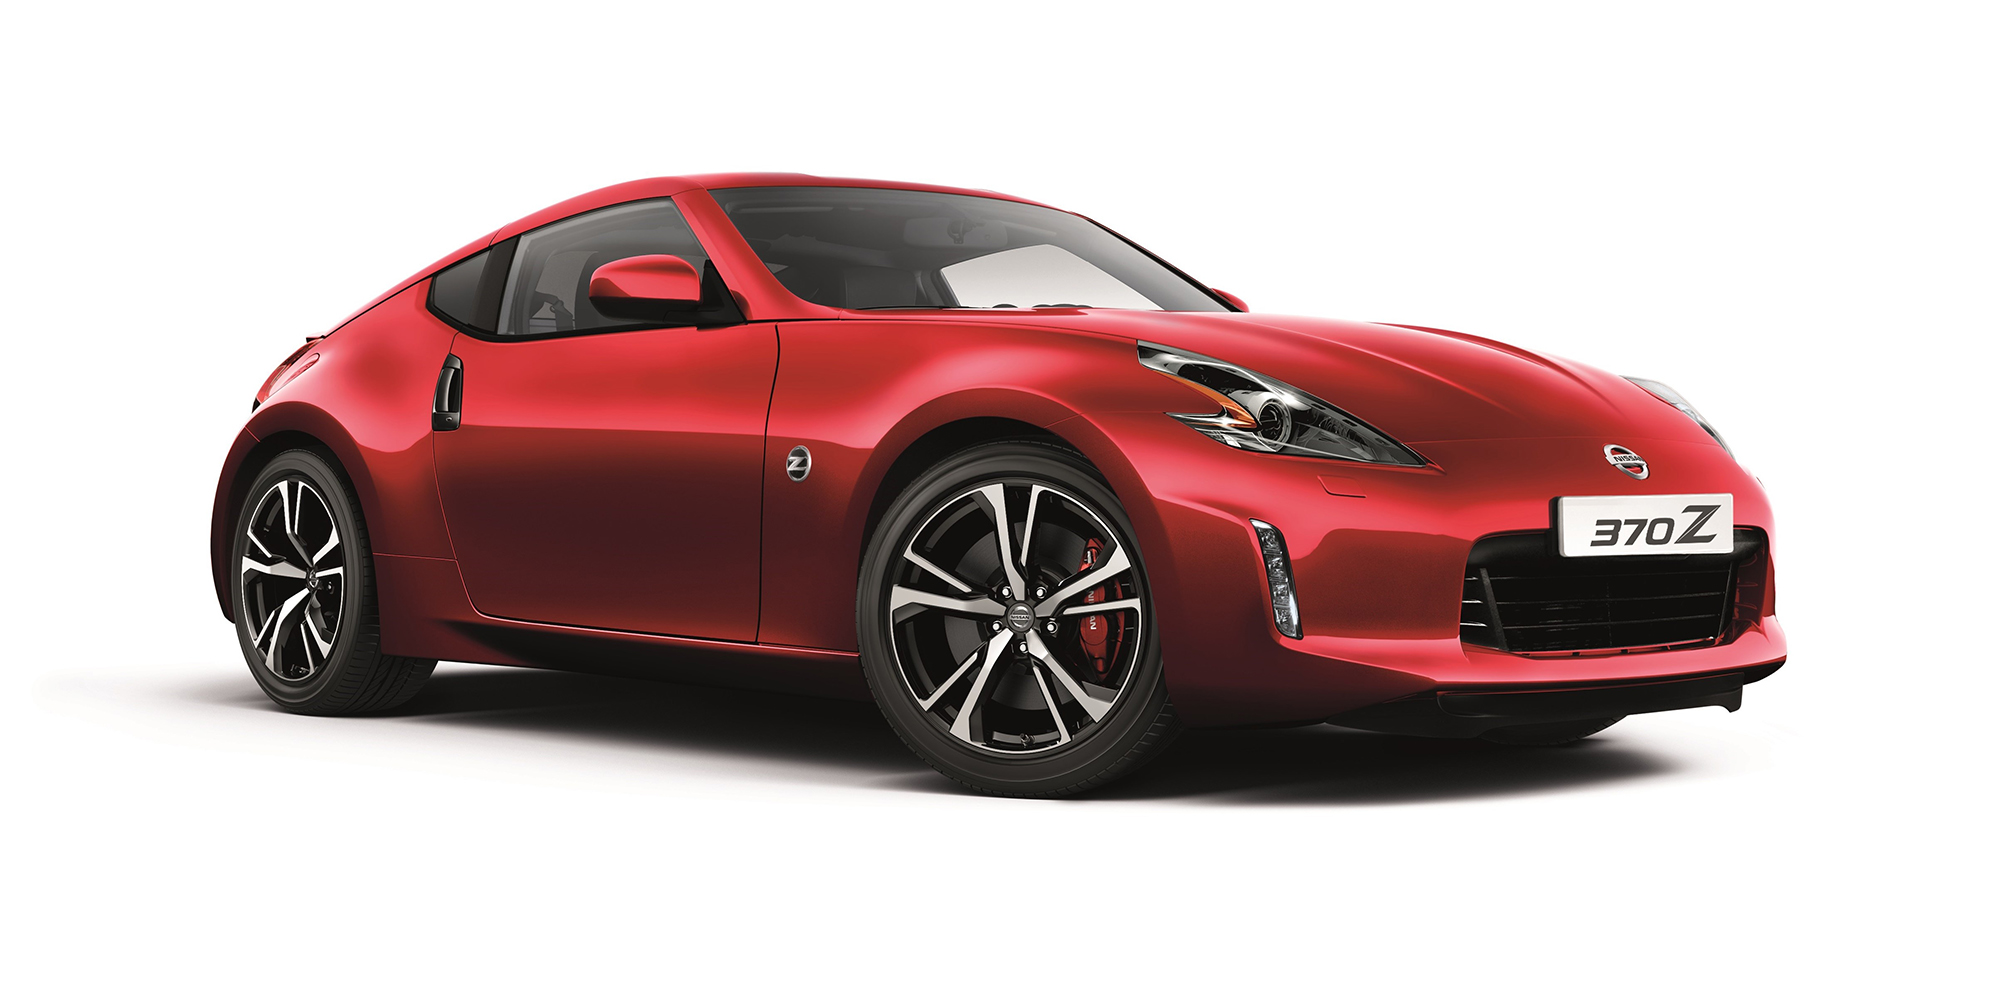 2018 nissan 370z revealed update photos caradvice. Black Bedroom Furniture Sets. Home Design Ideas